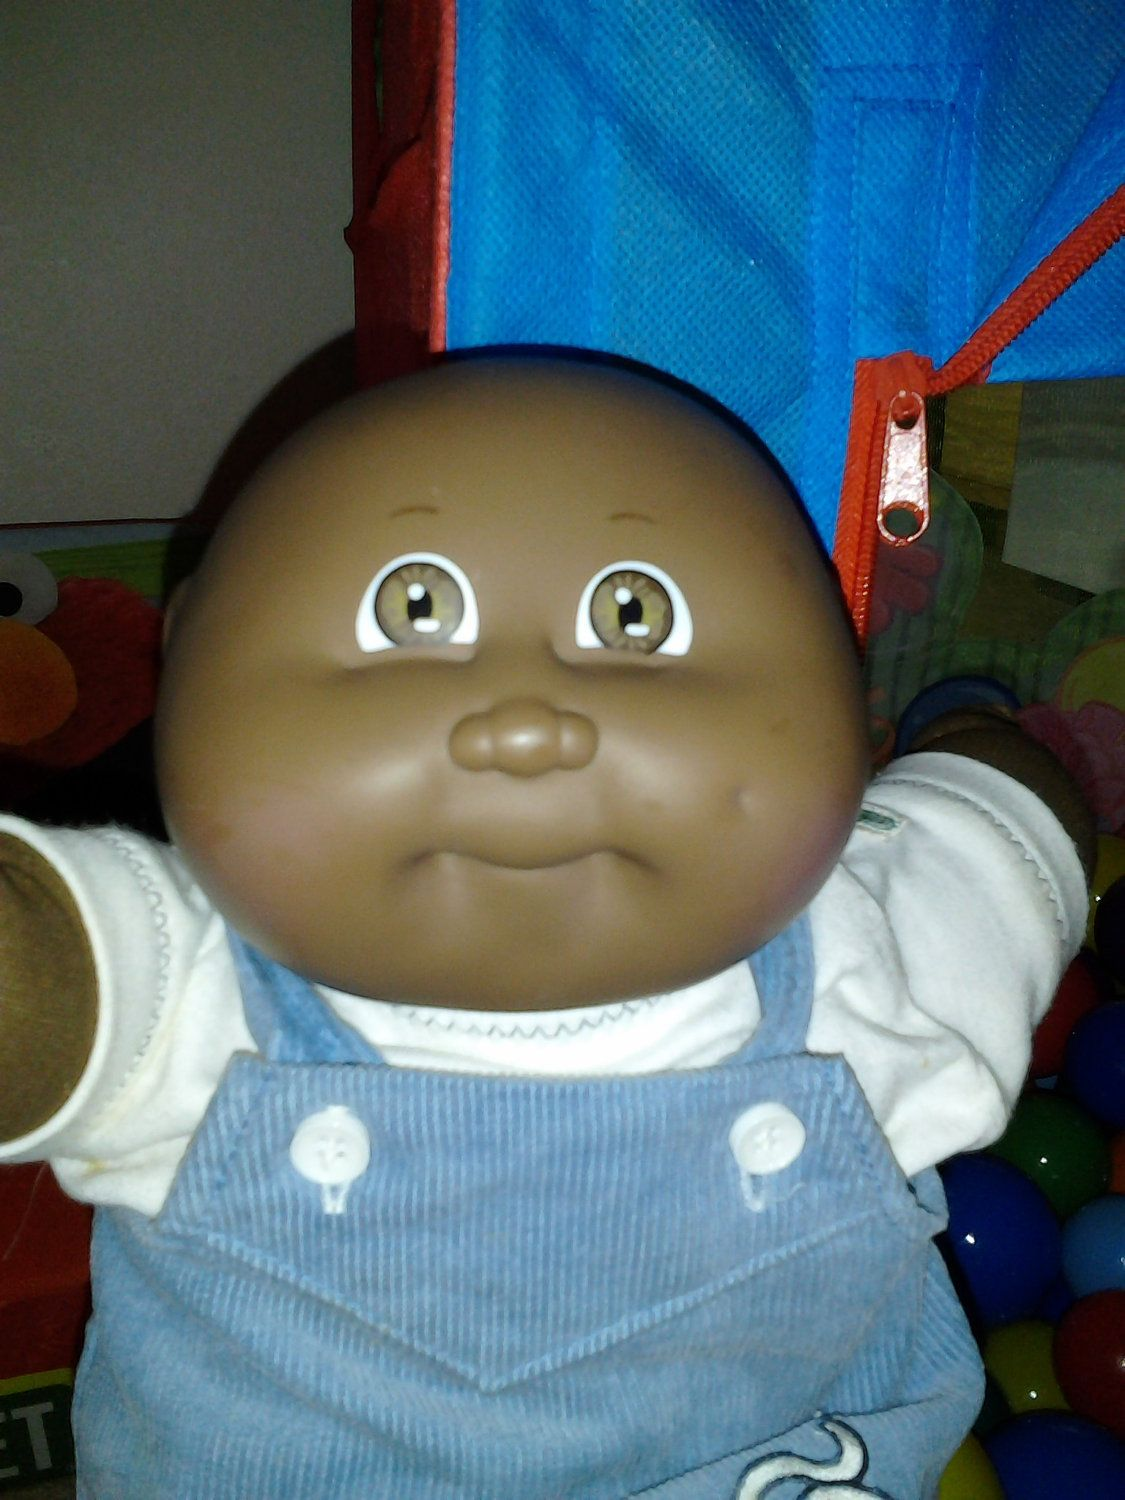 Vintage Cabbage Patch Kid Cpk African American Bald Coleco Etsy Cabbage Patch Dolls Cabbage Patch Kids Patch Kids